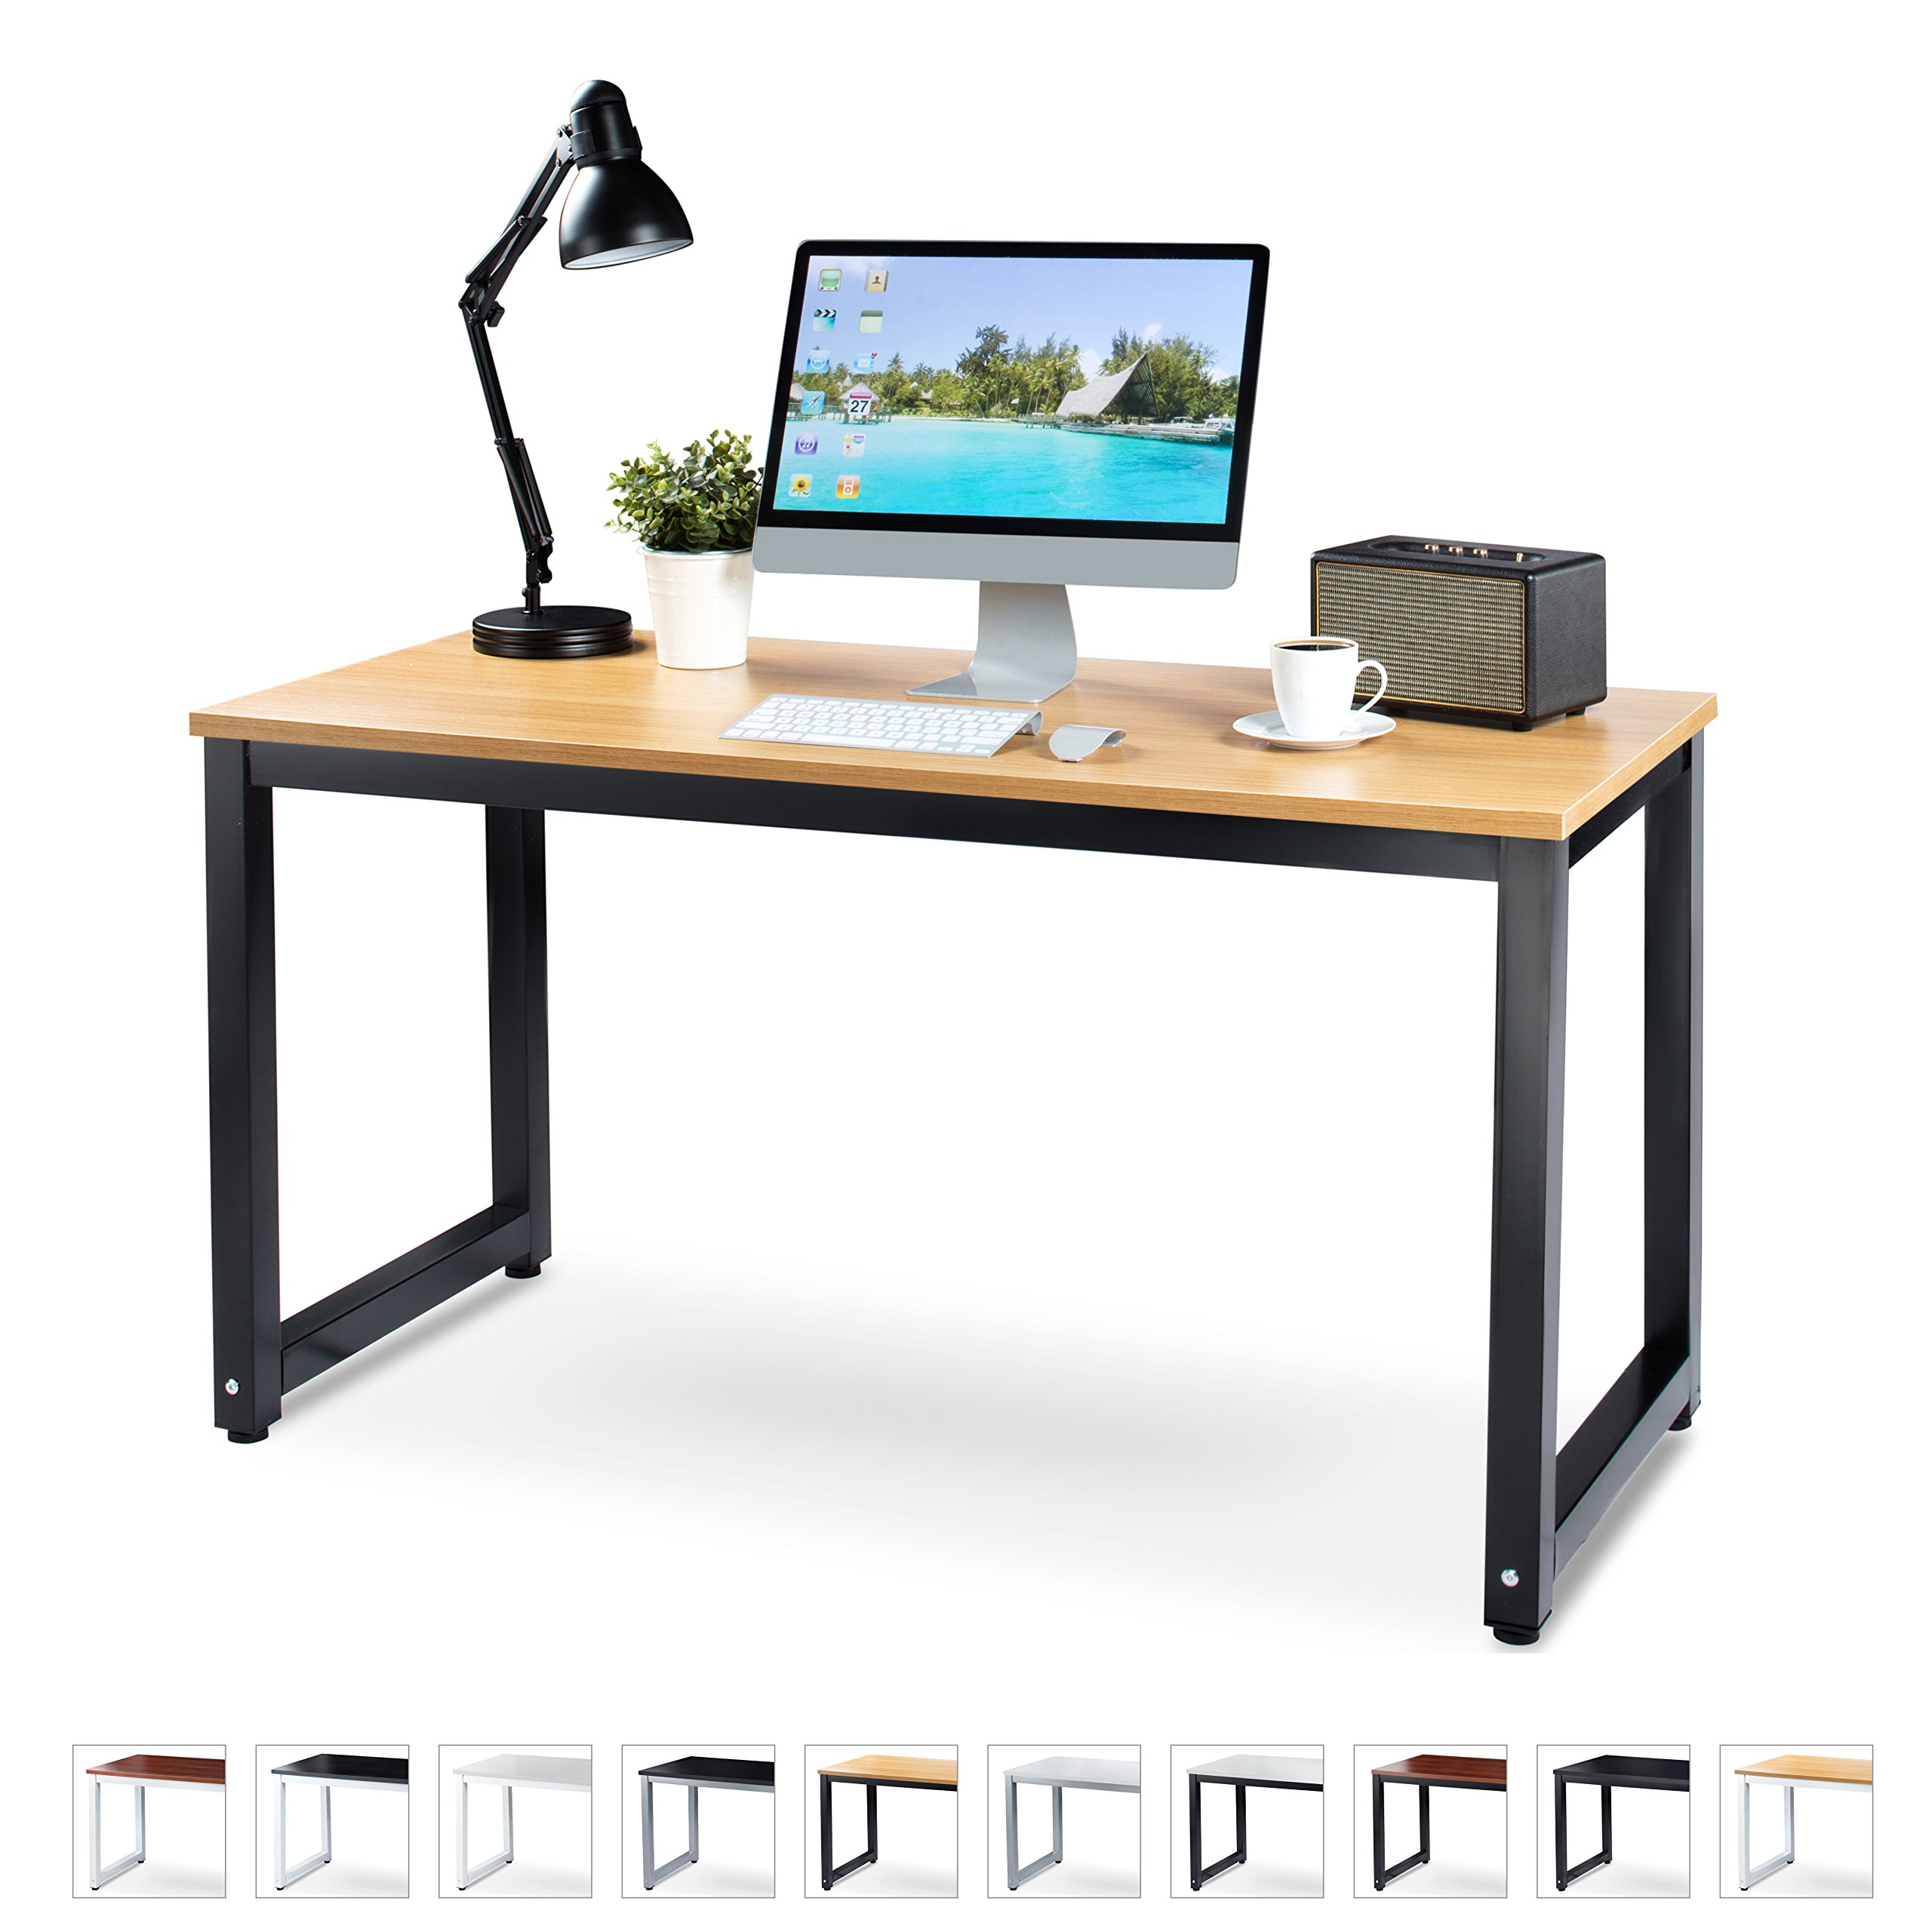 Office Computer Desk - 55'' x 23'' Beige Laminated Wooden Particleboard Table and Black Powder Coated Steel Frame - Work or Home - Easy Assembly - Tools and Instructions Included - by Luxxetta by Luxxetta